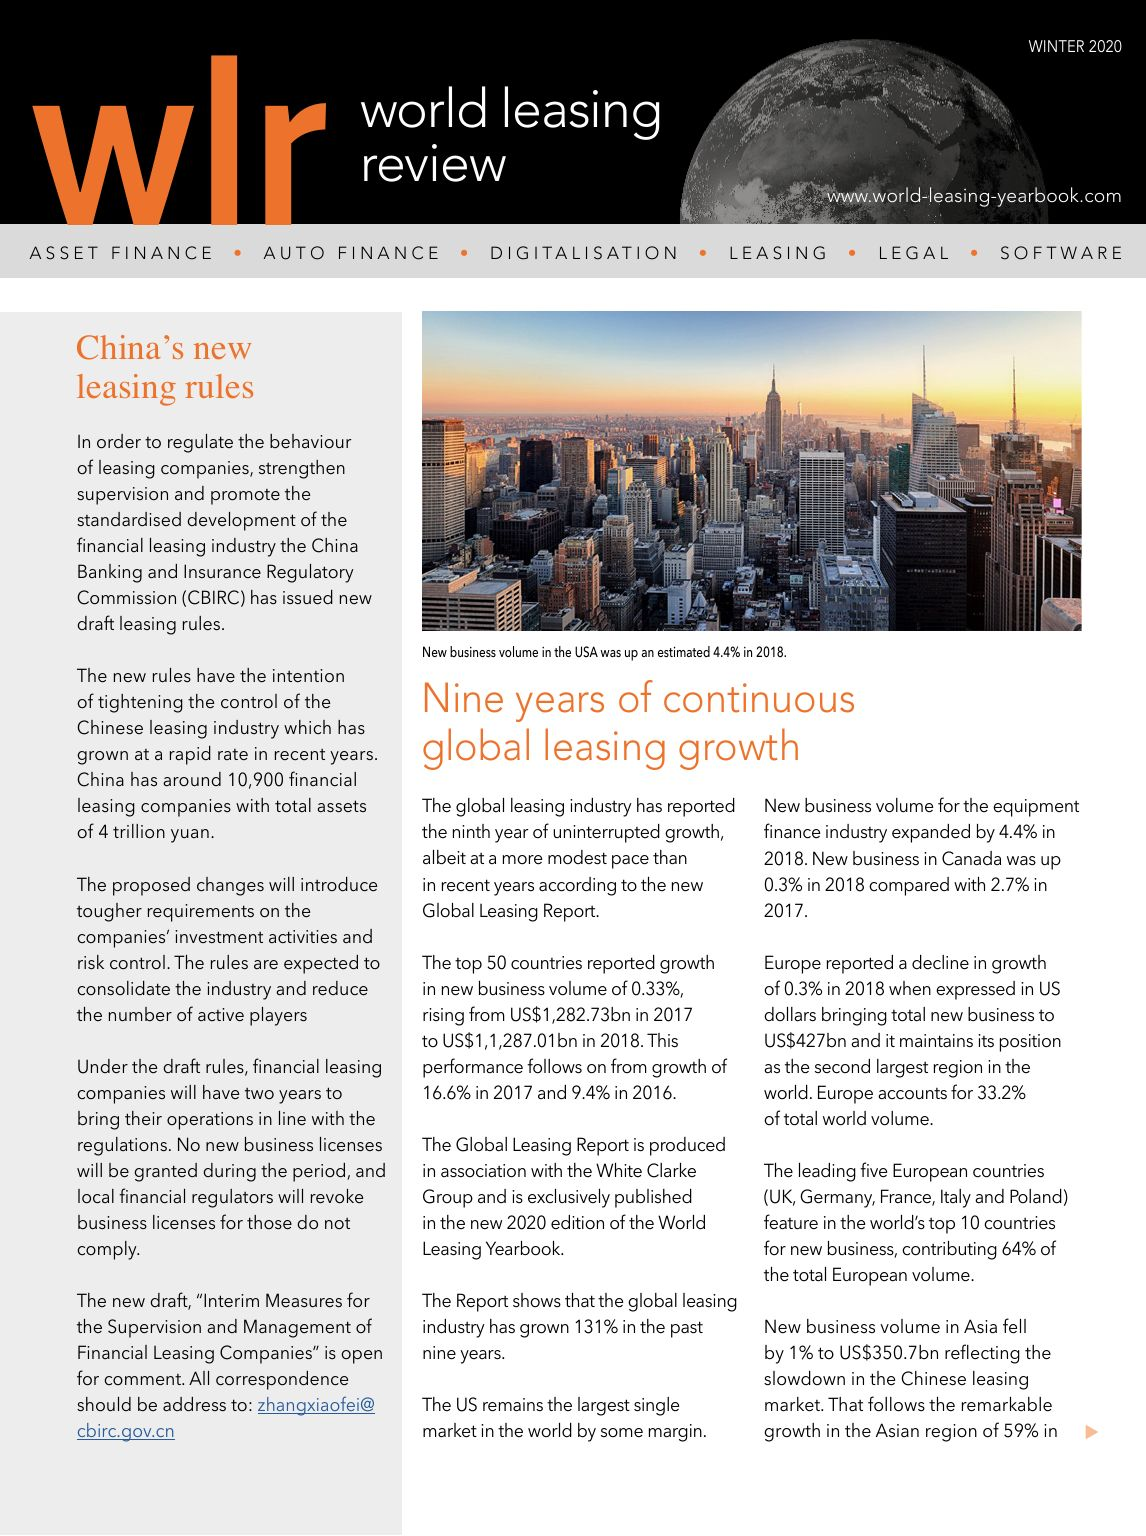 World Leasing Review Winter 2020 Edition